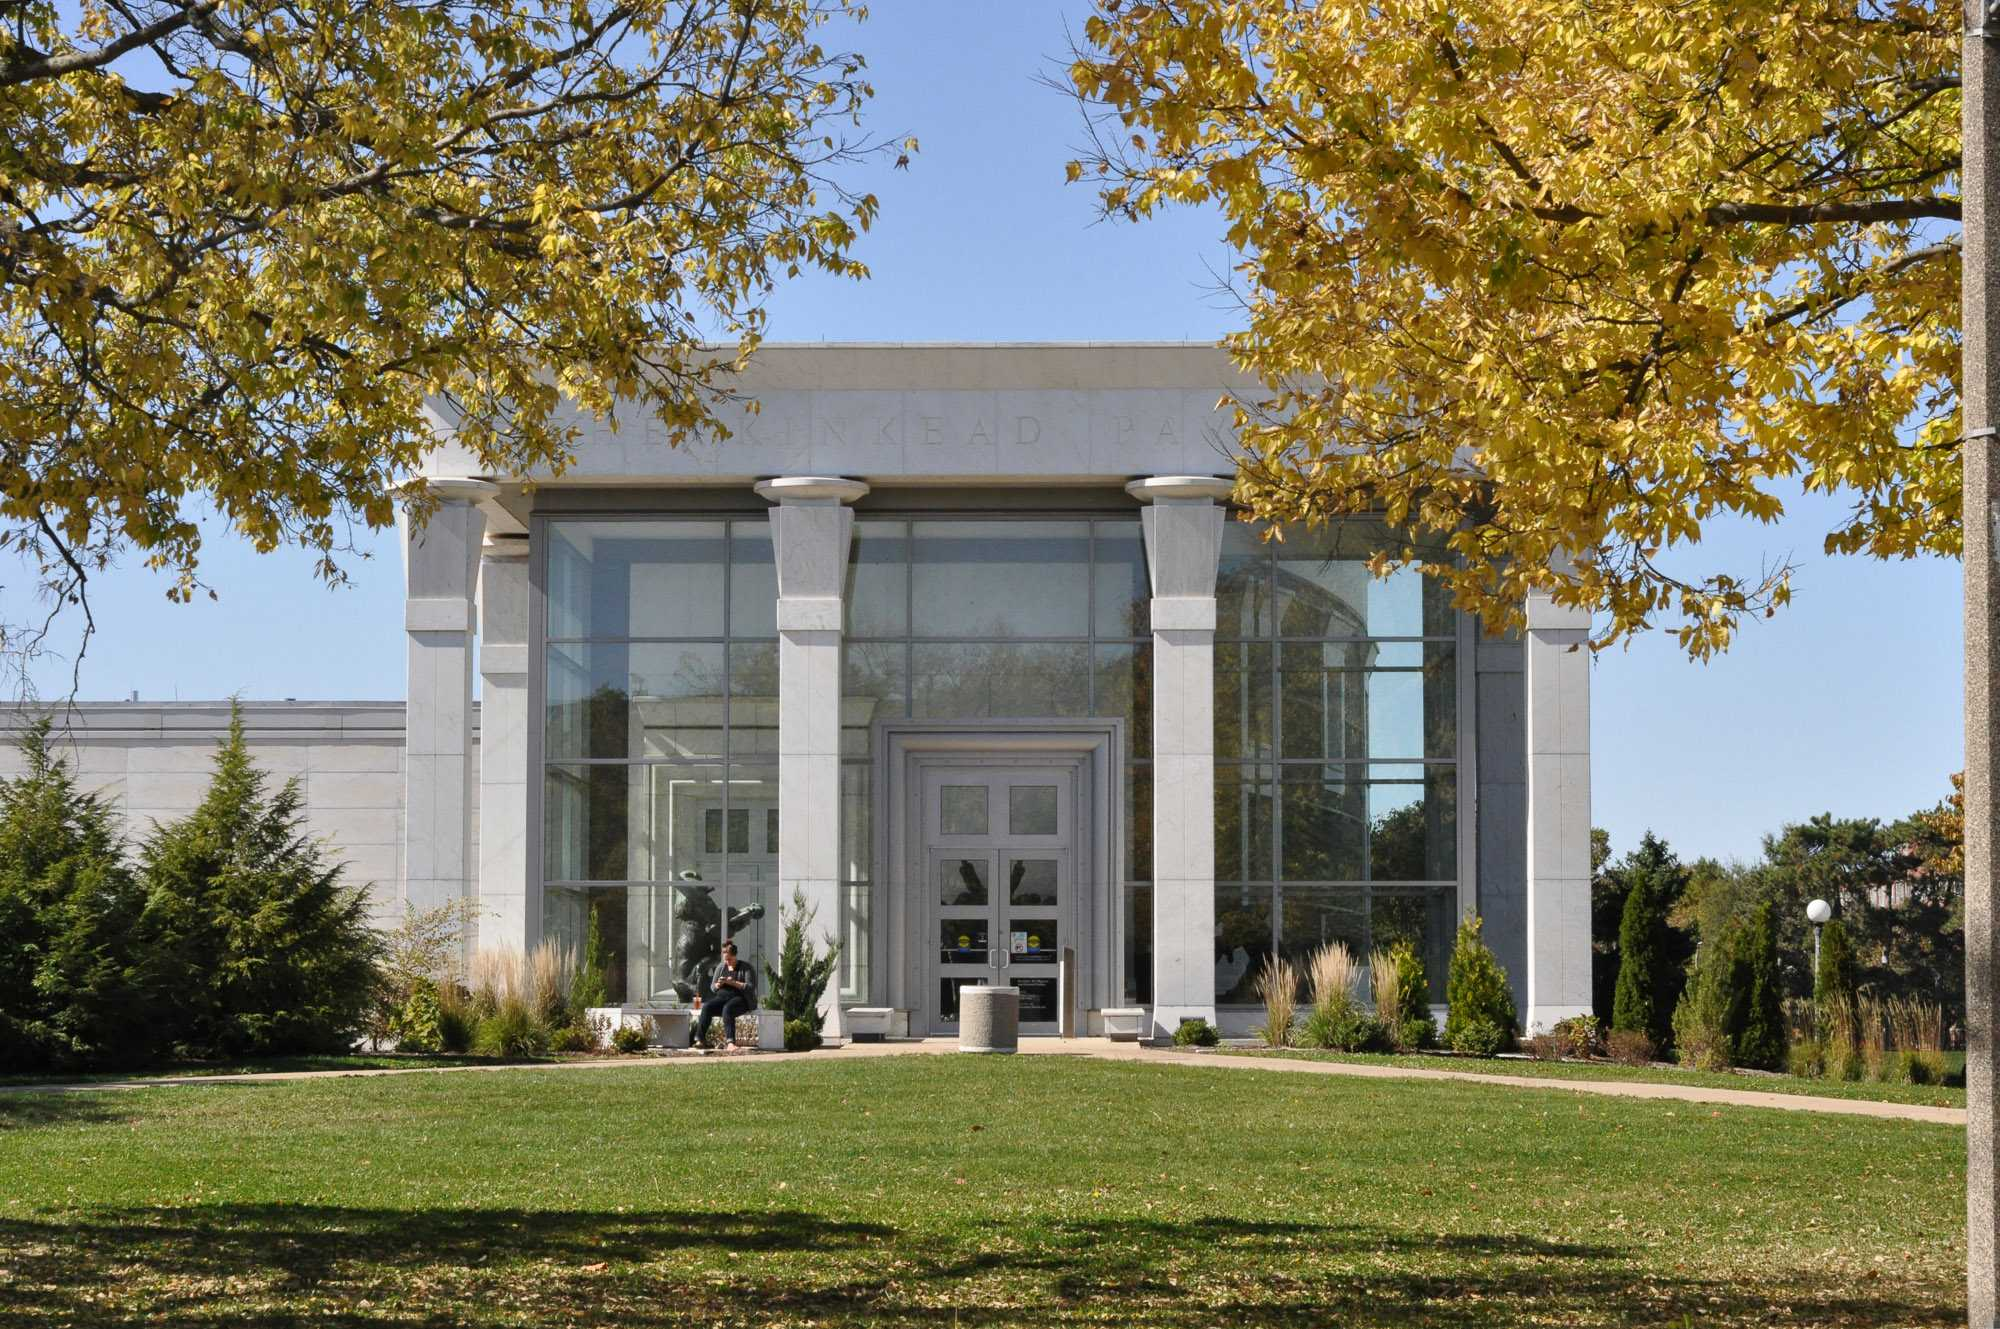 The Kinkead Pavilion at the Krannert Art Museum on October 14, 2015. The museum is currently looking for a Director.